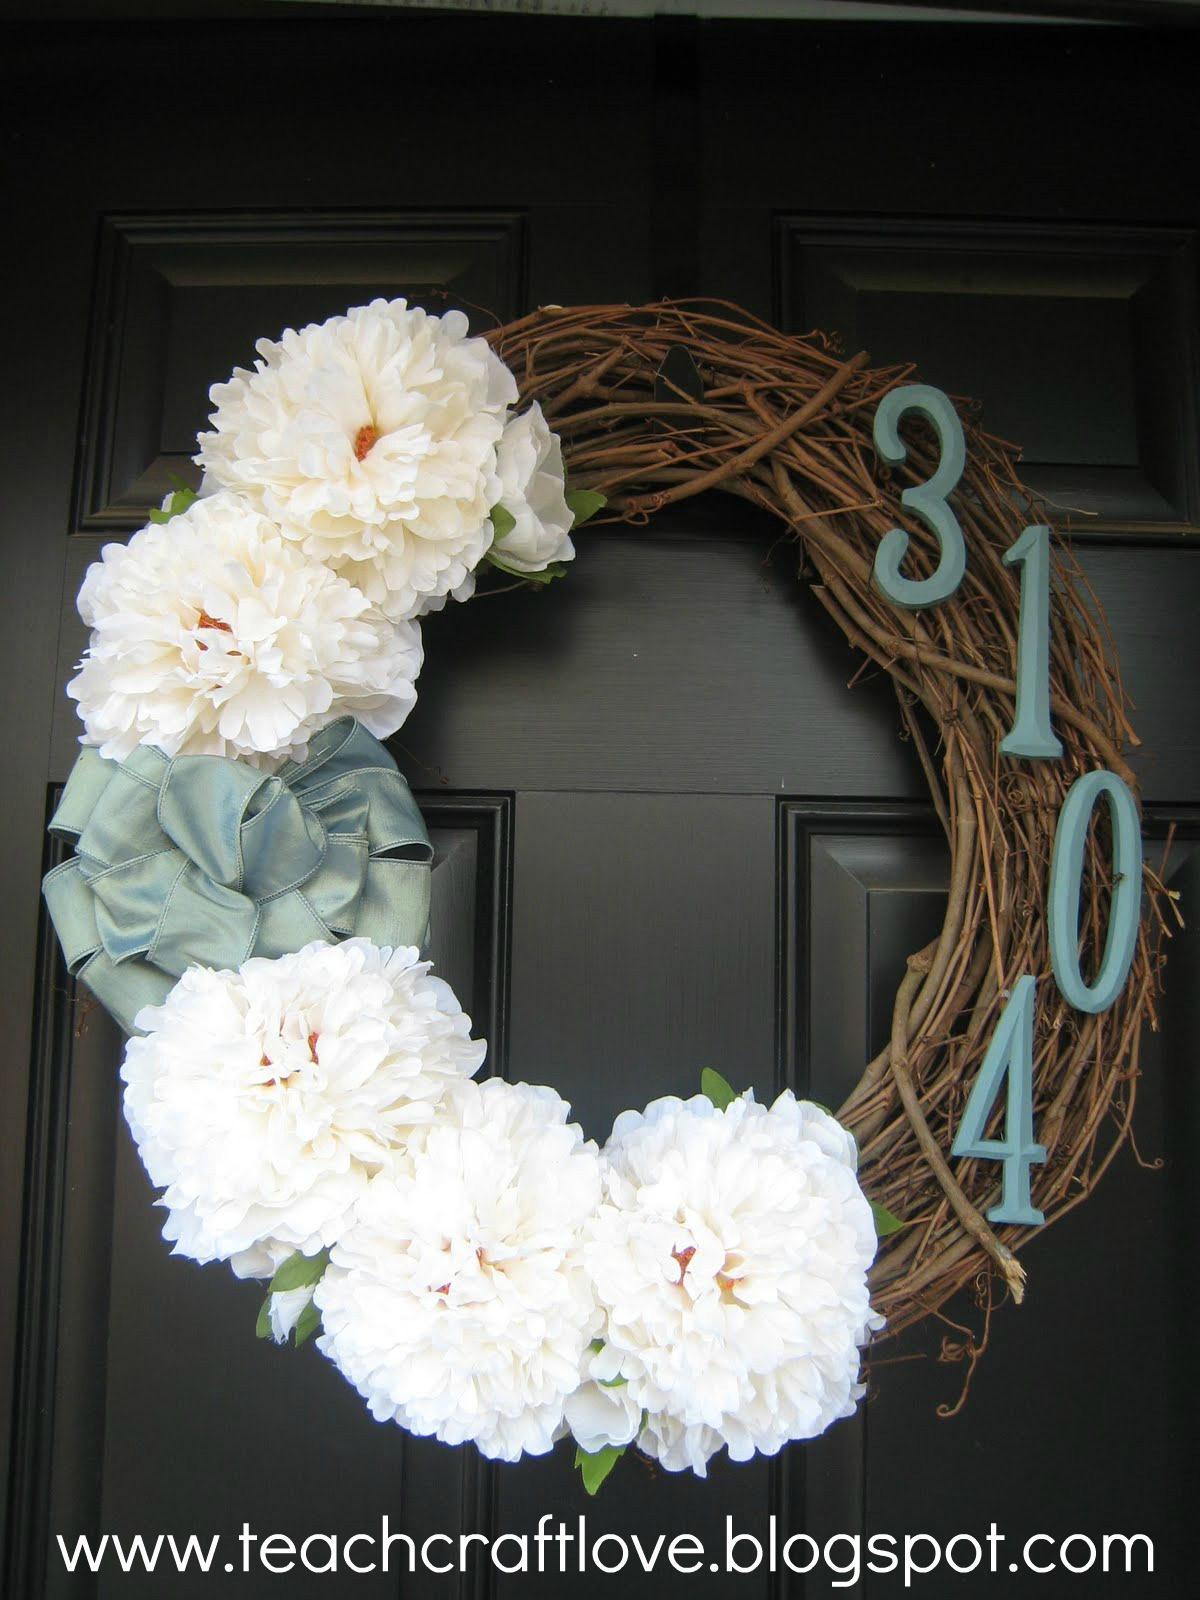 Personalized front door decorations - Diy Personalized Wreath